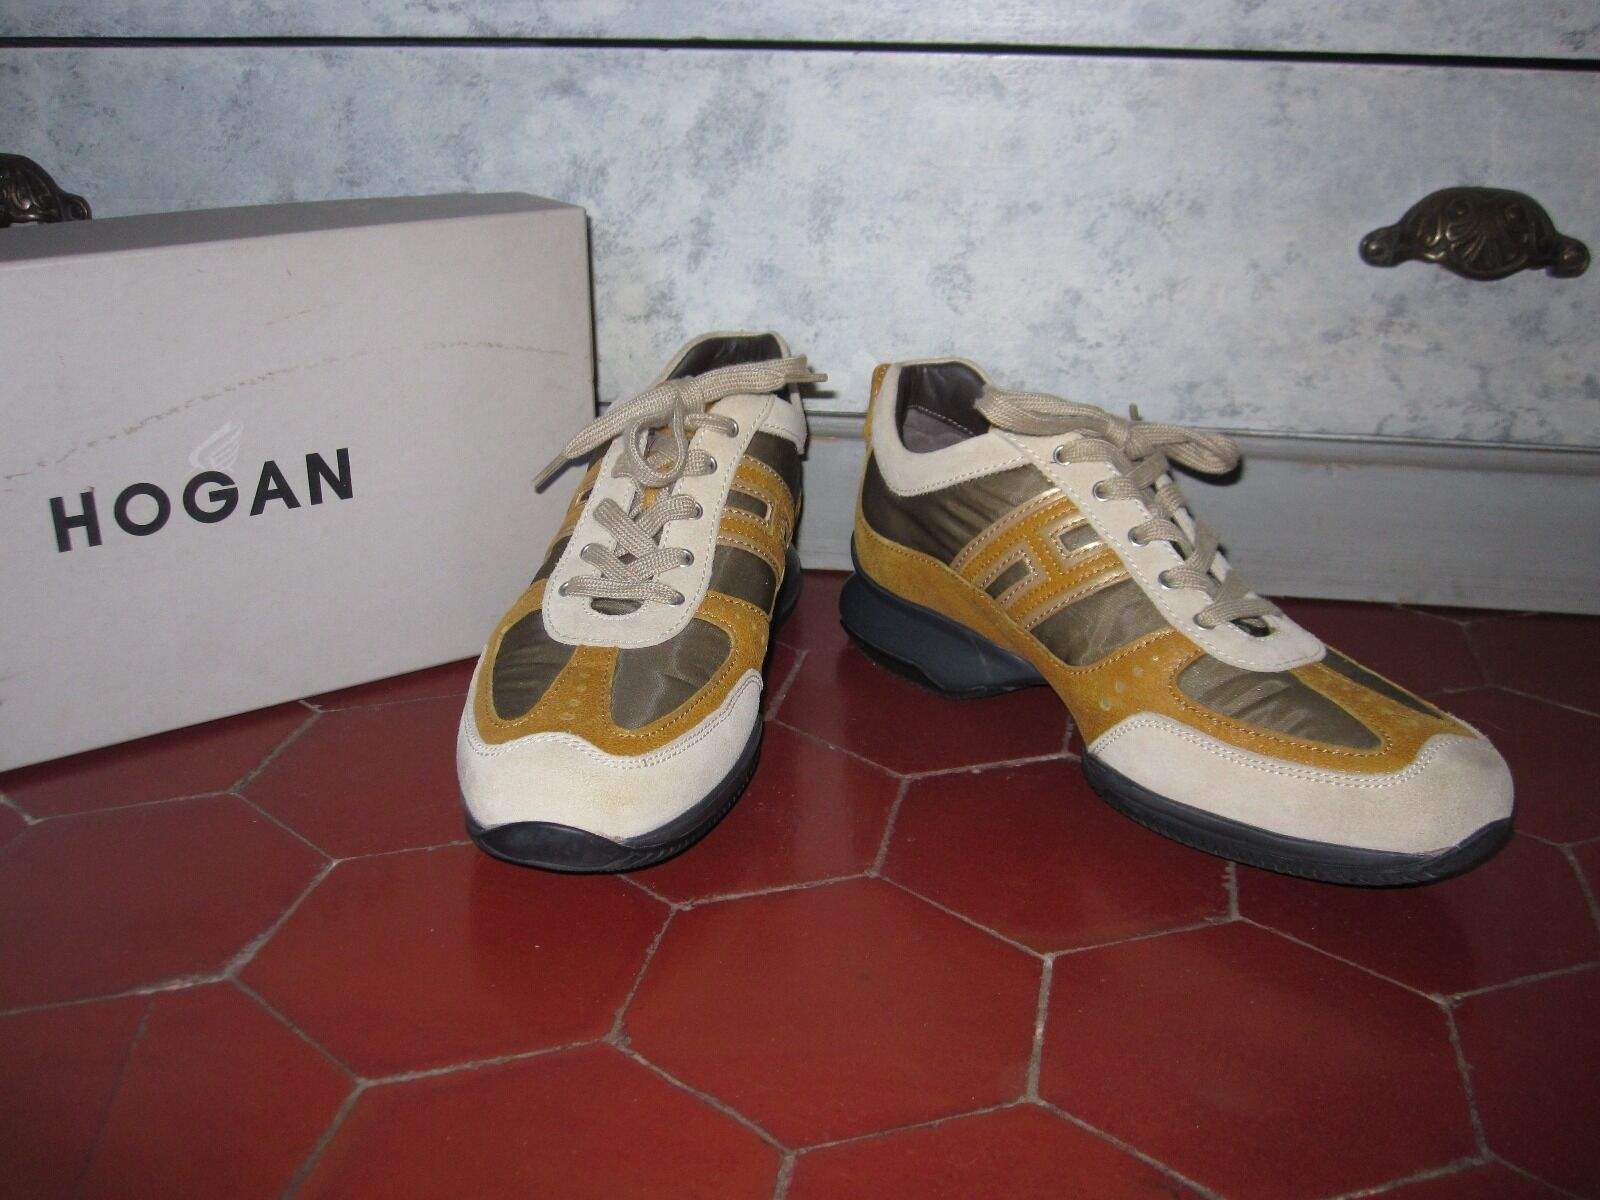 bbb CHAUSSURES SNEAKERS HOGAN T F 40 I 396,5 US 8 NEUF